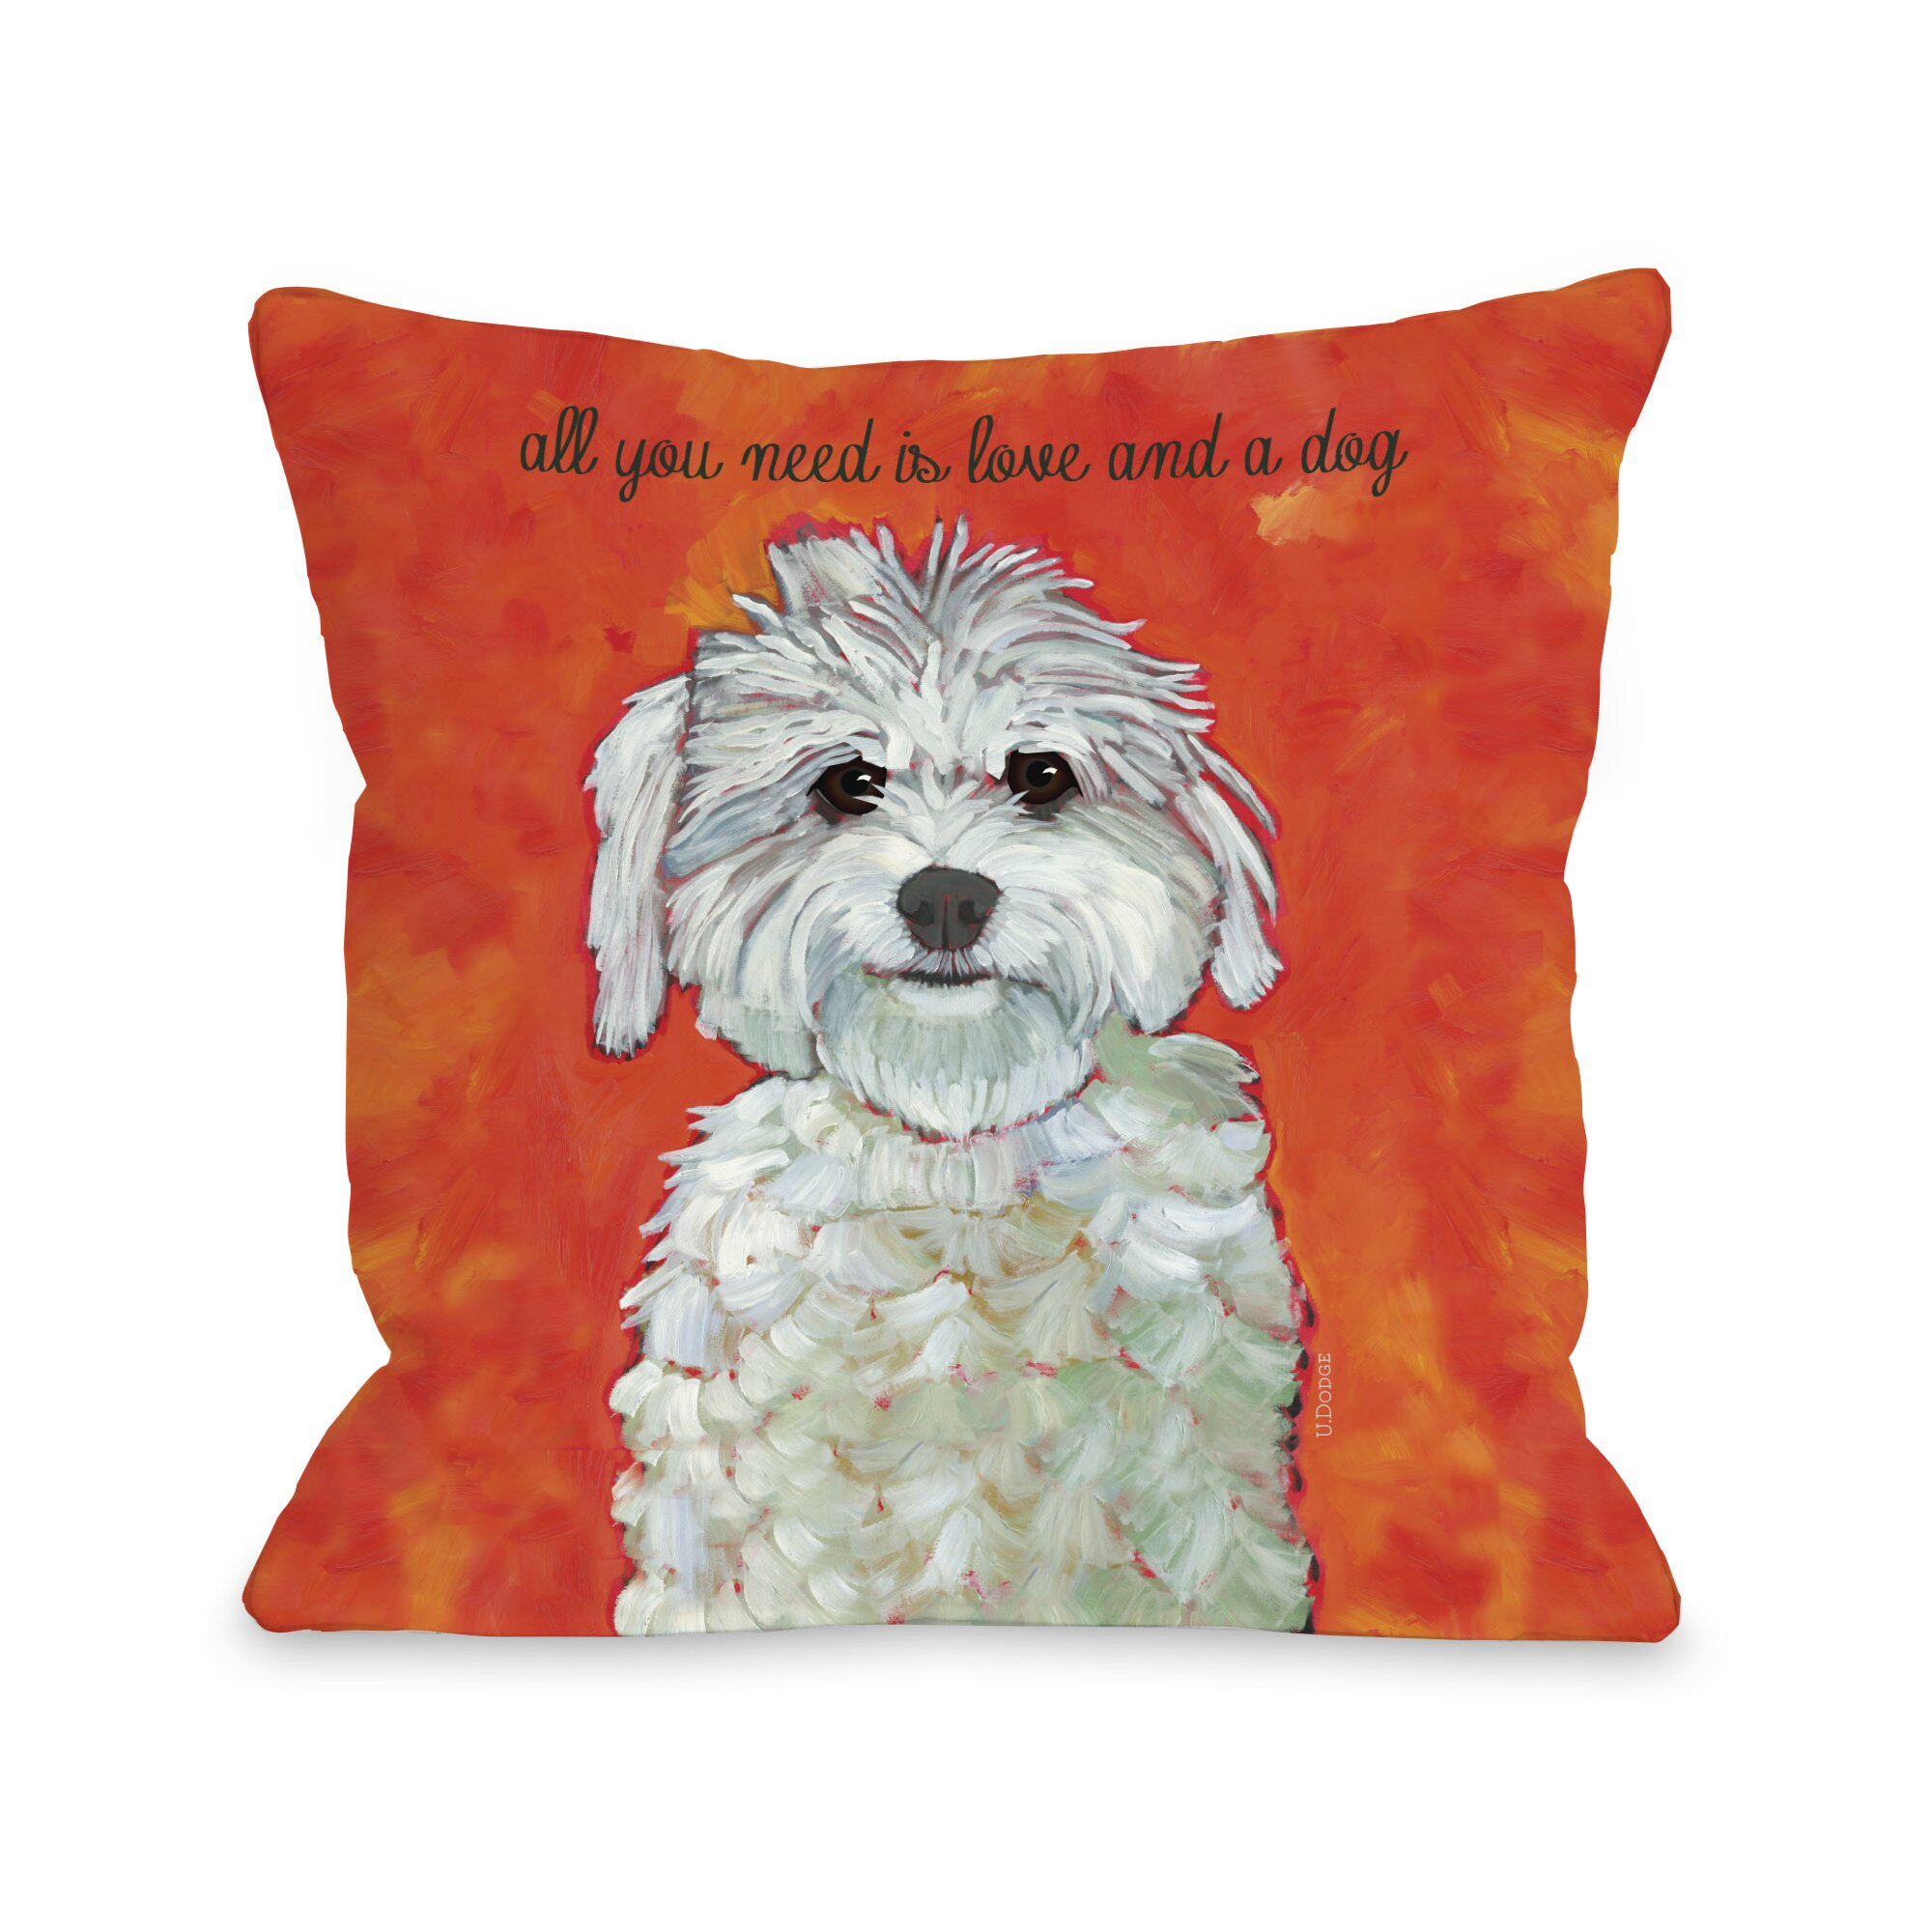 One Bella Casa Doggy Decor Love & A Dog Throw Pillow & Reviews Wayfair